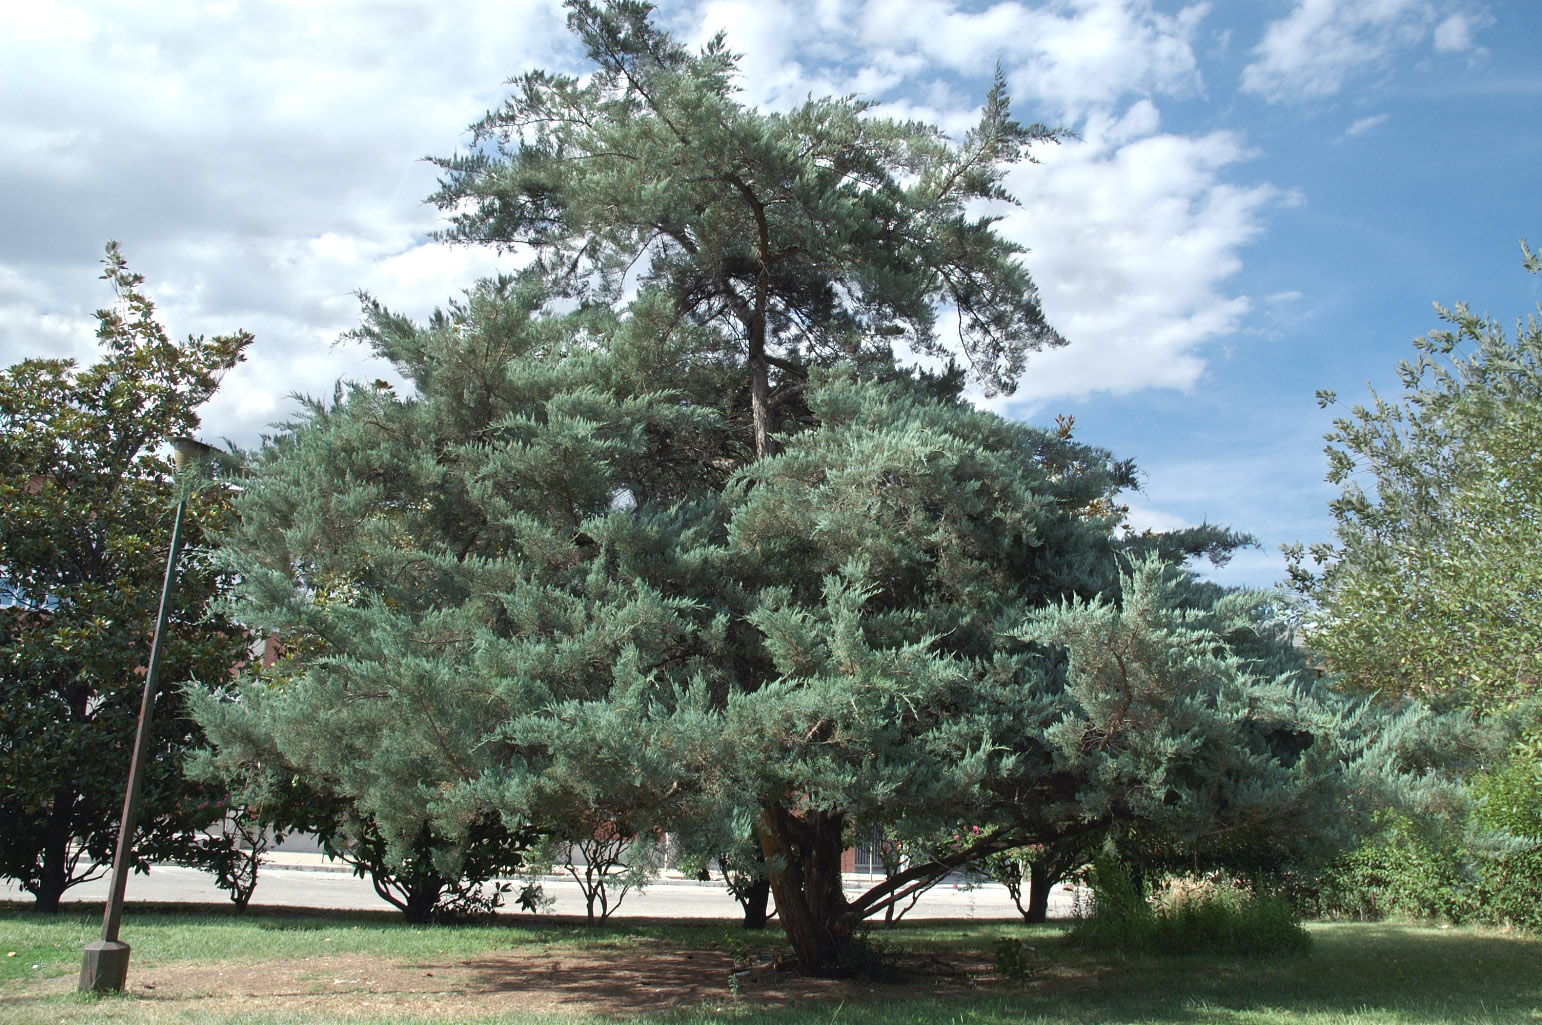 Broad pyramidal shape of the tree all year round